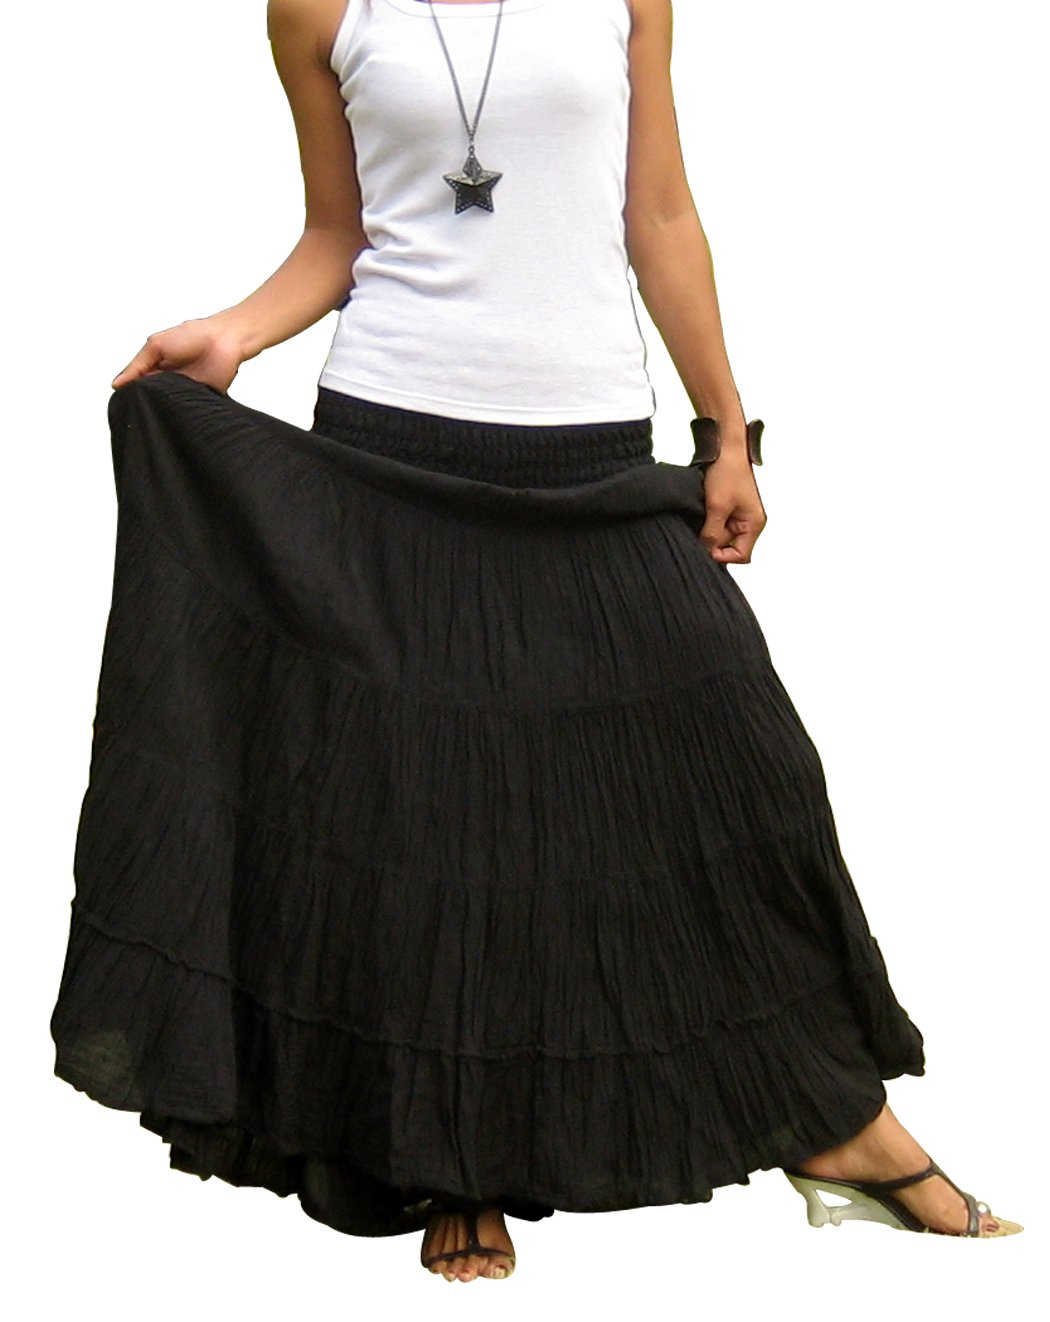 Billy's Thai Shop Women's Long Maxi Pleated Skirt with Elastic Smocked Waist One Size Fits Most. Black